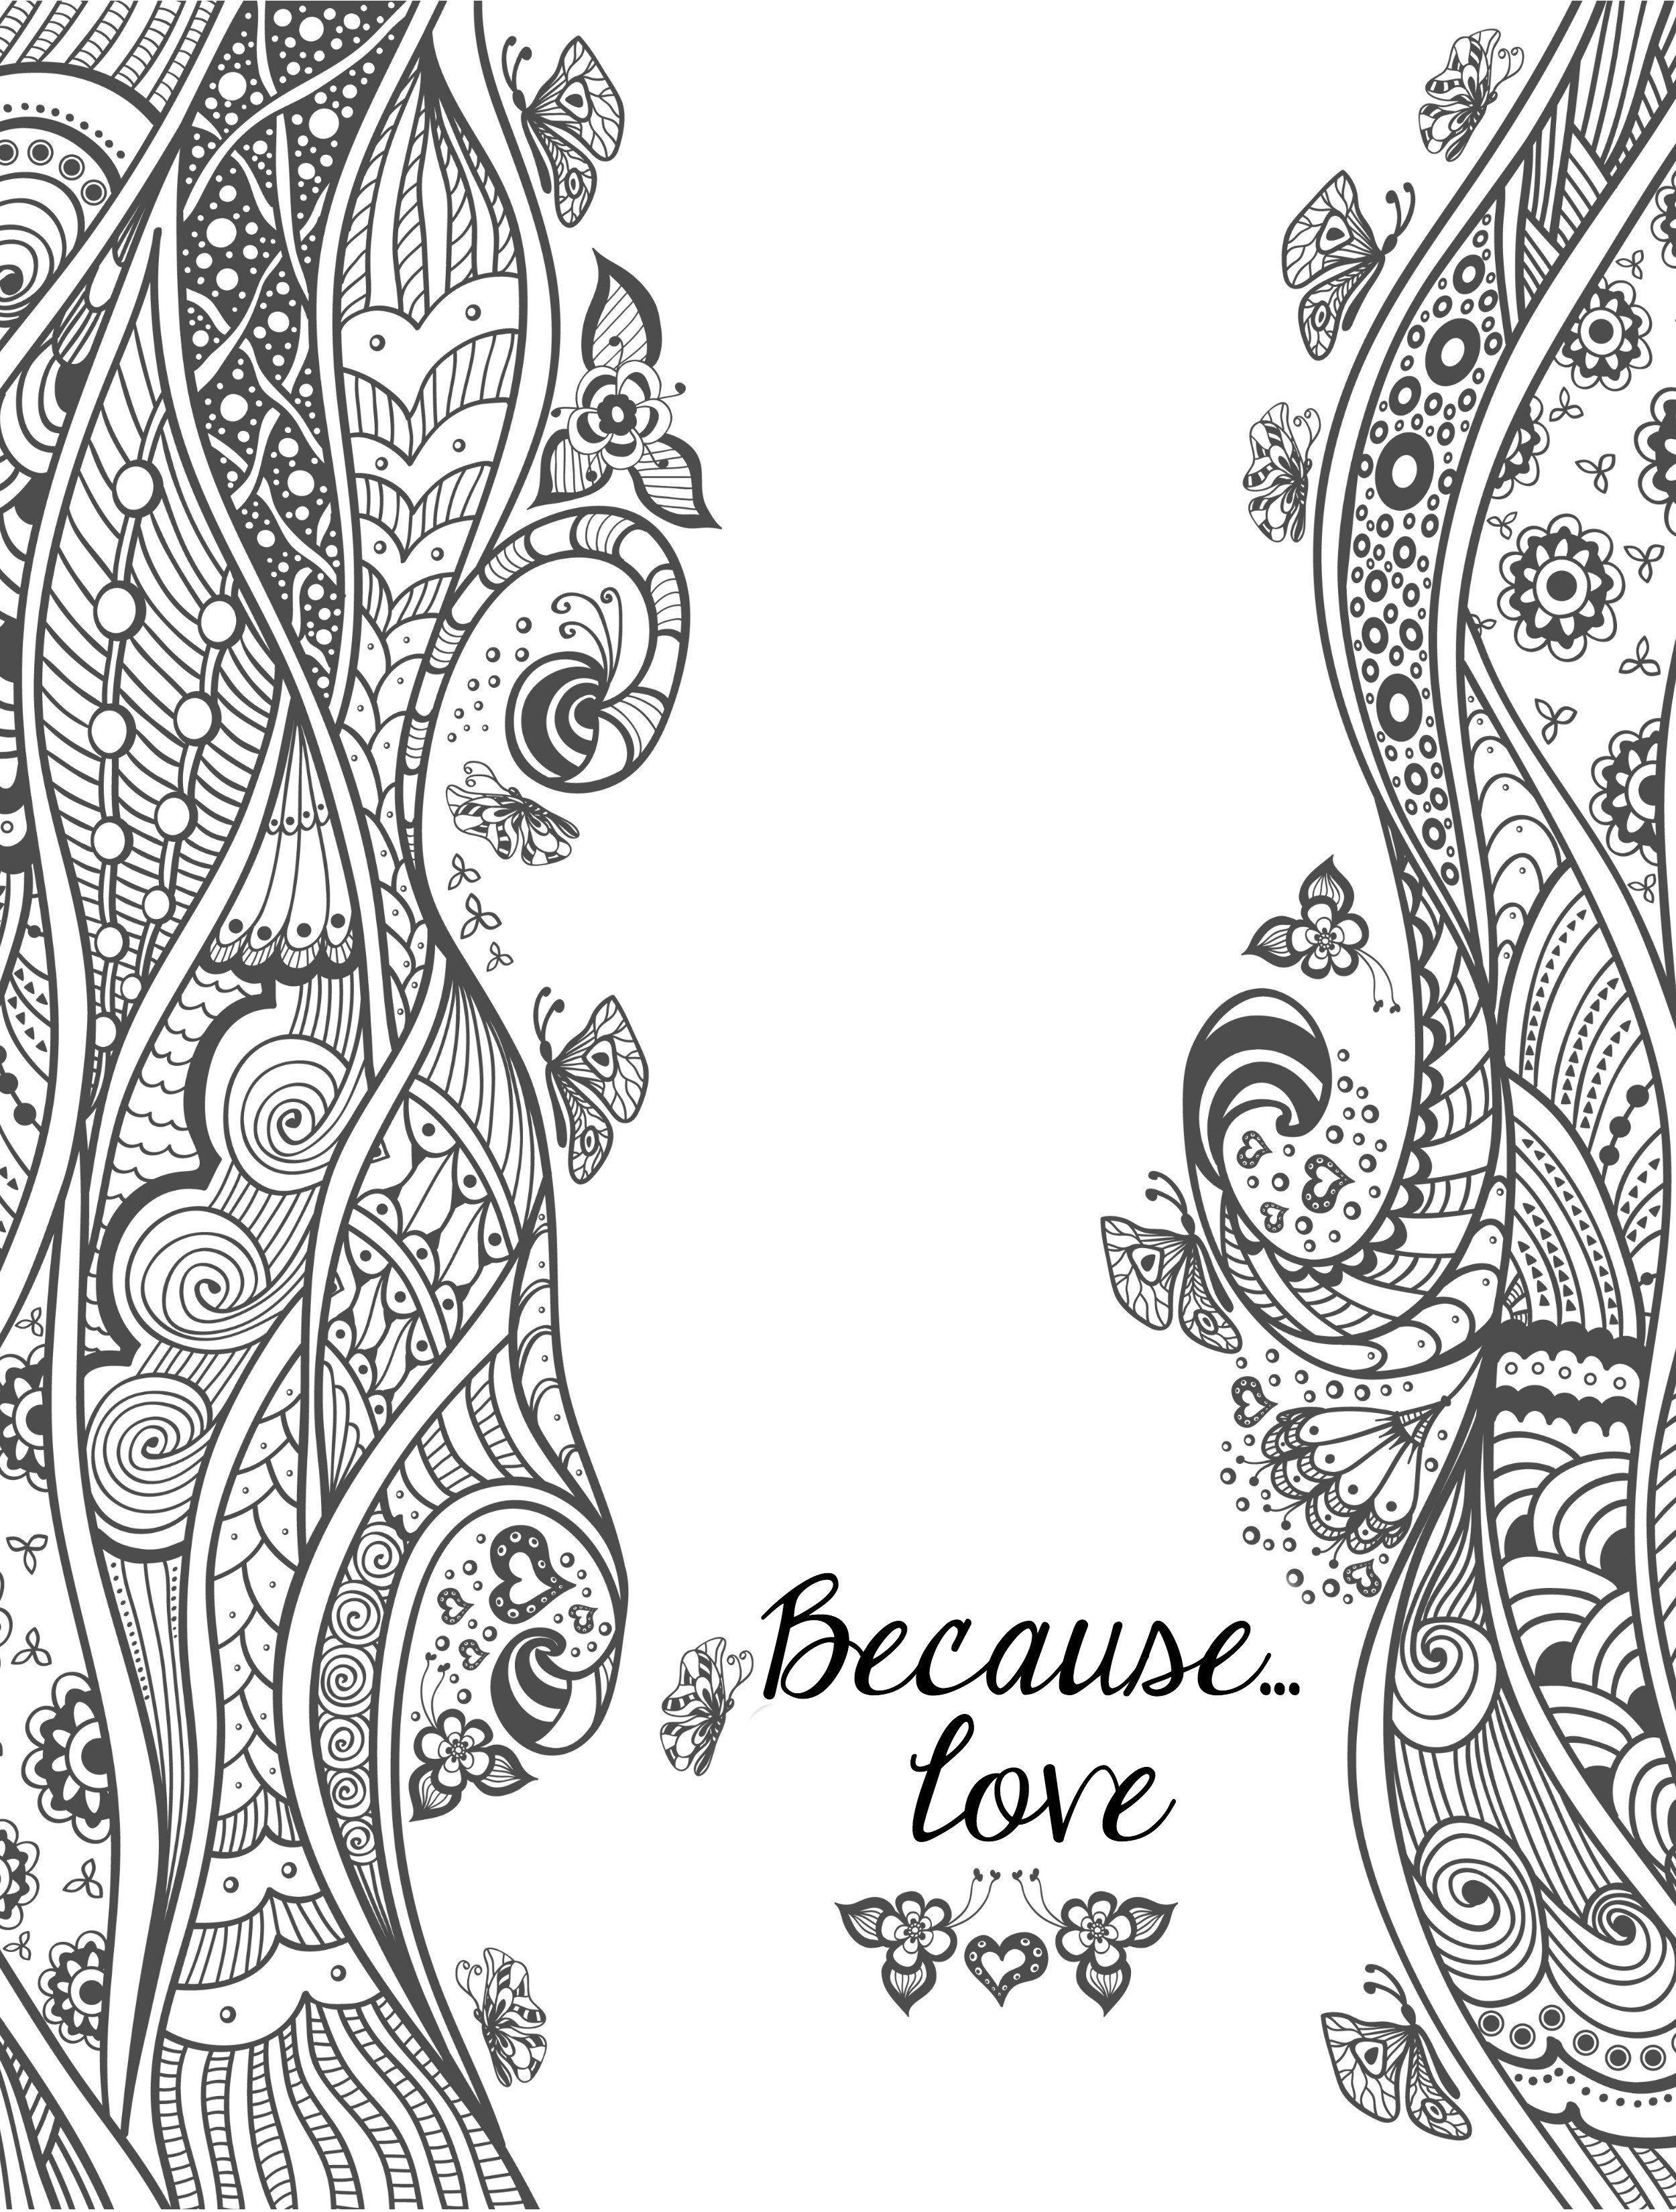 valentines abstract doodle zentangle paisley coloring pages colouring adult detailed advanced printable kleuren voor volwassenen coloriage